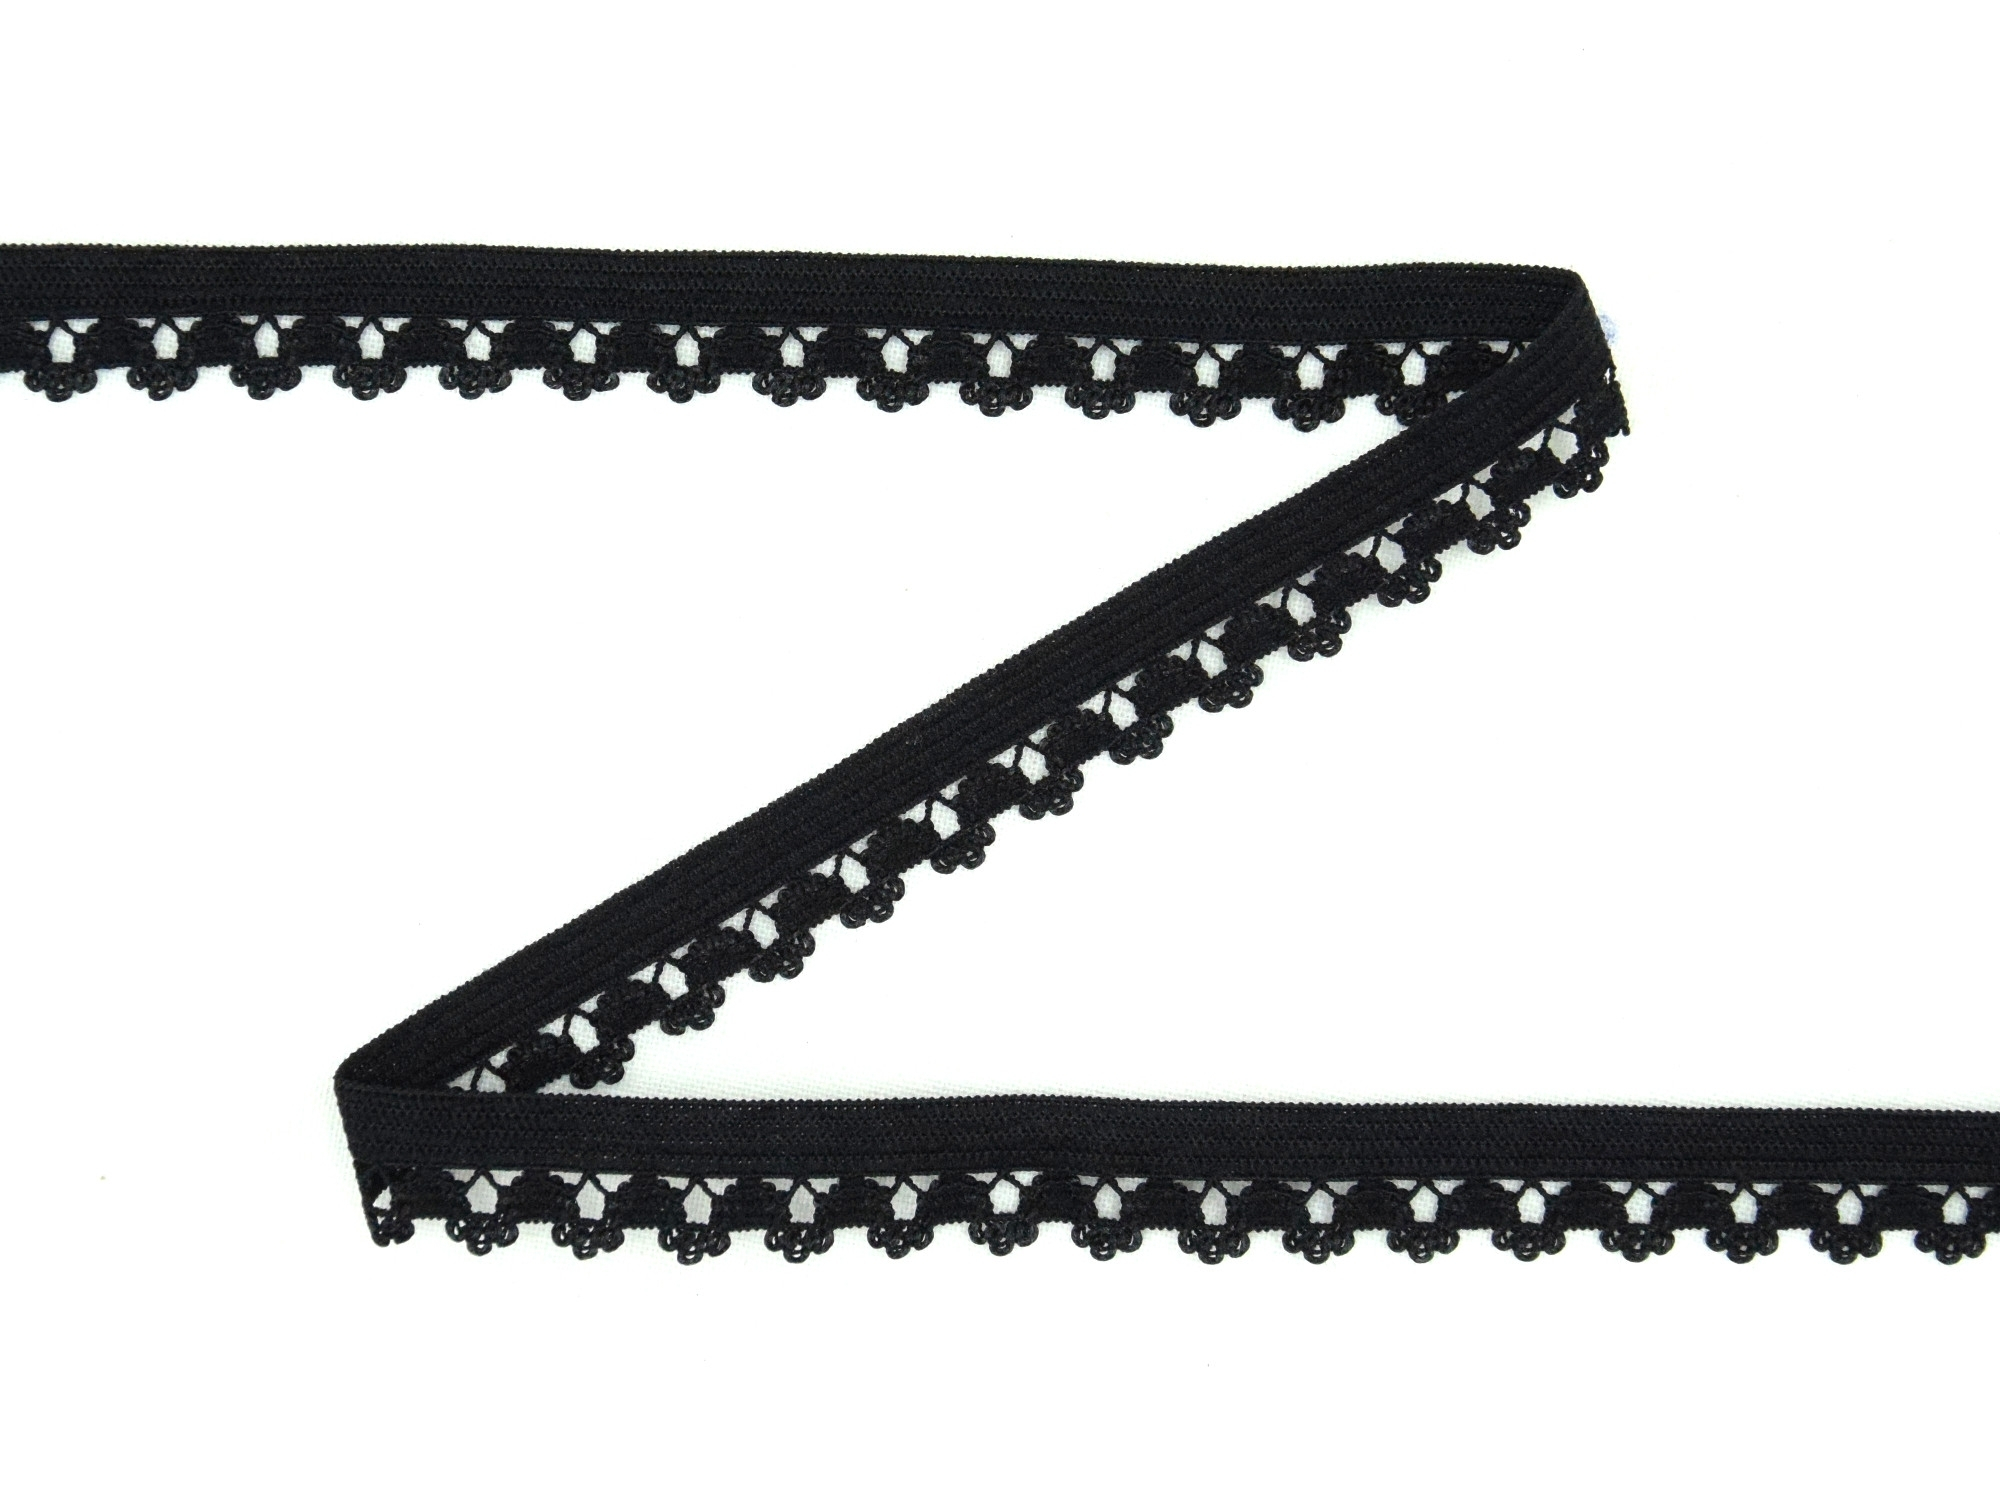 Elastic Binding Ribbon with flowers, black 14 mm